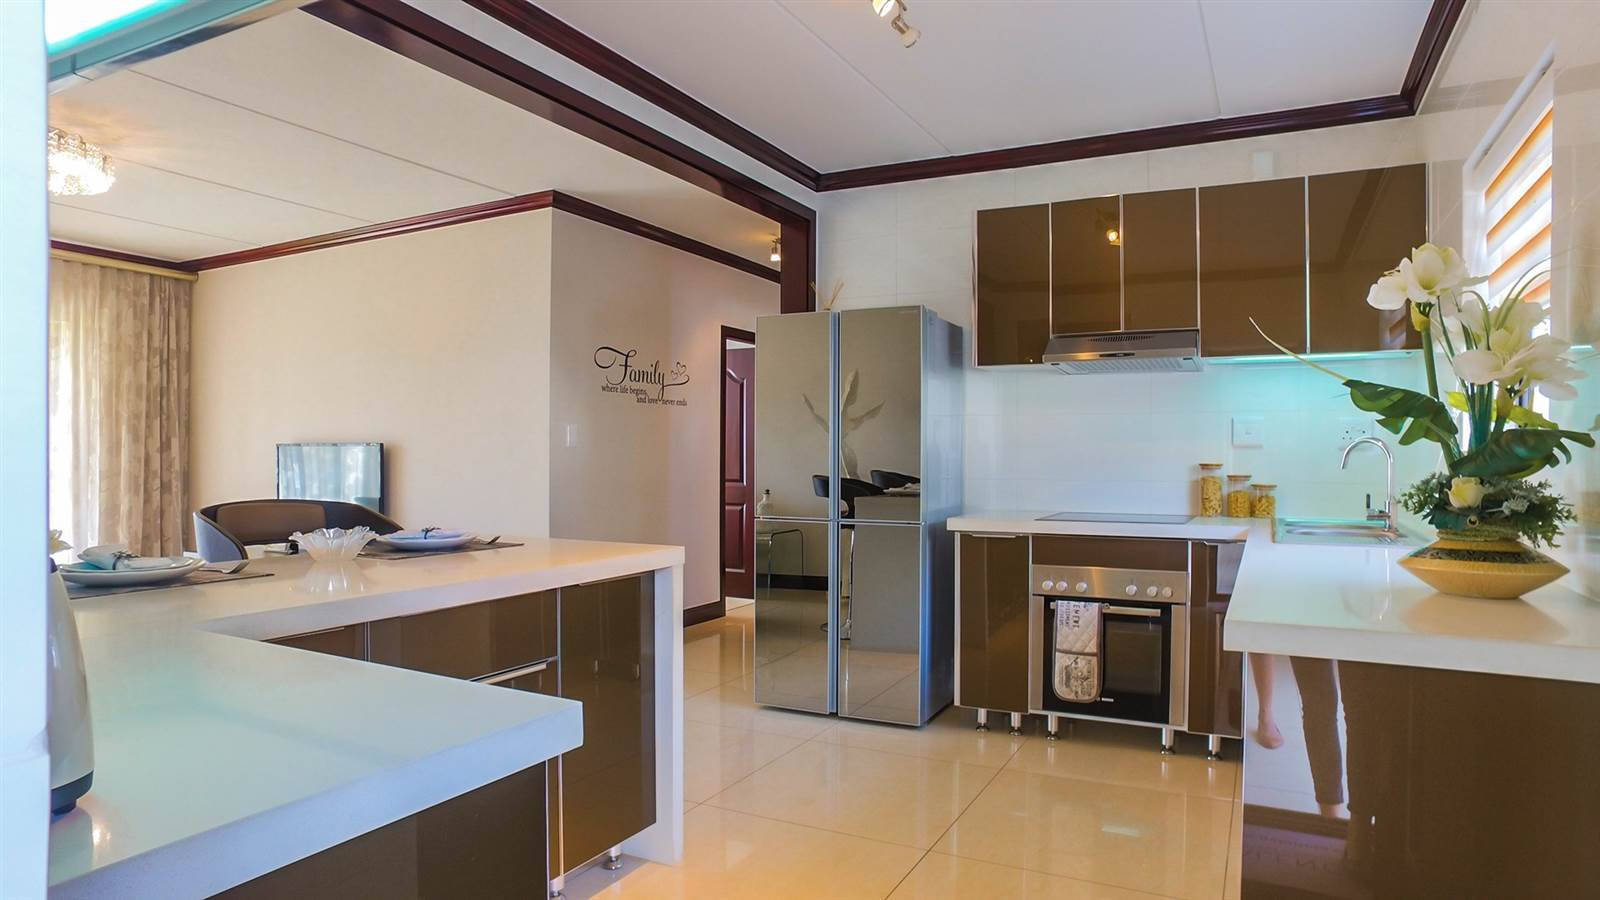 2 Bedroom Apartment for sale in Fourways ENT0040134 : photo#14